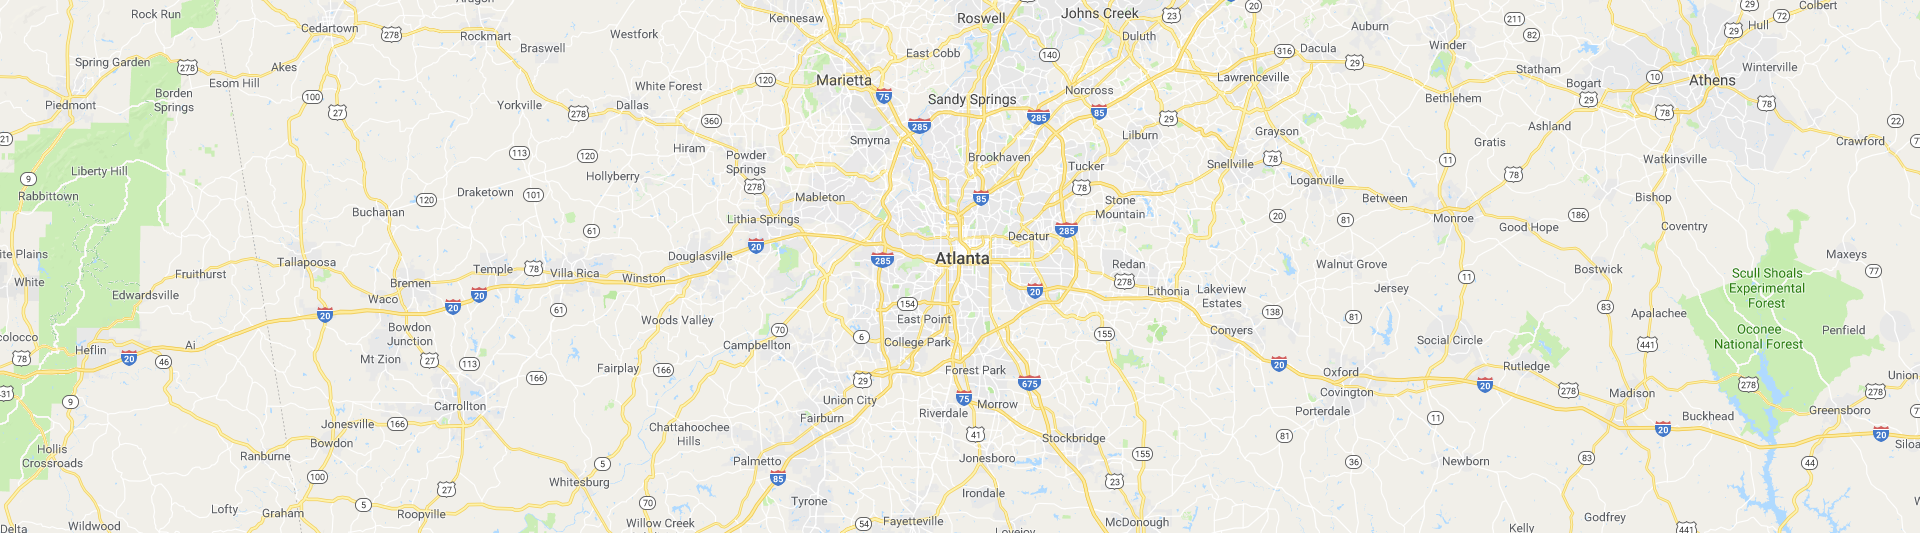 biohazardous waste removal Atlanta Metro Area